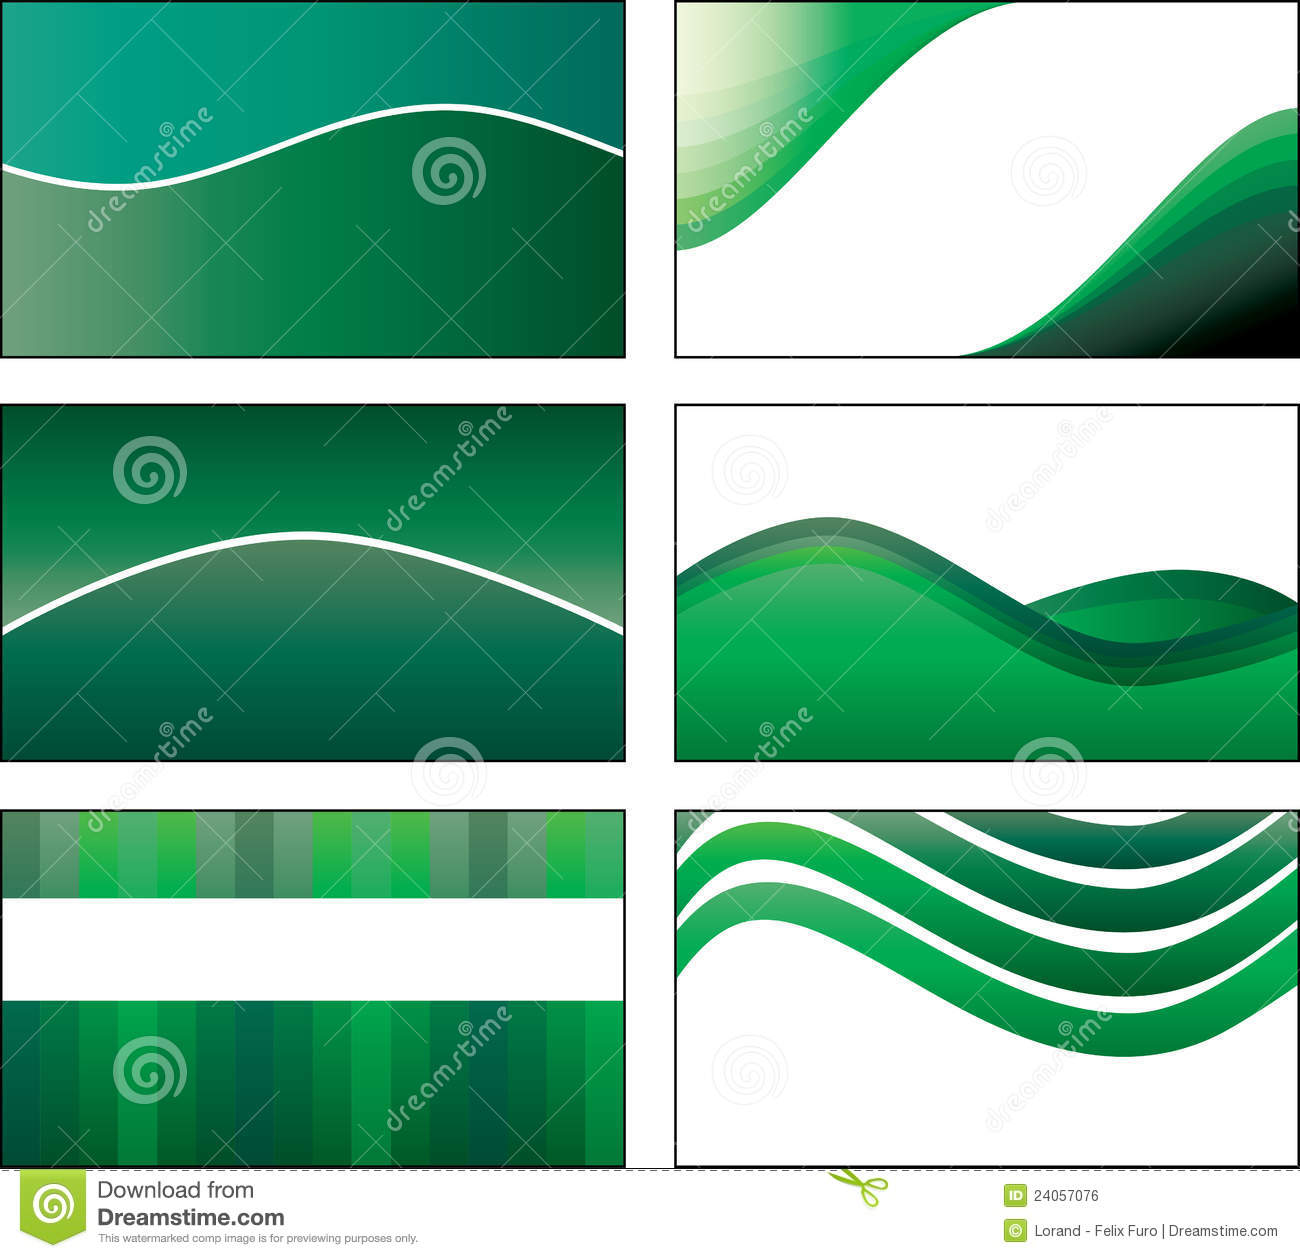 6 green business card template designs stock vector illustration 6 green business card template designs fbccfo Images